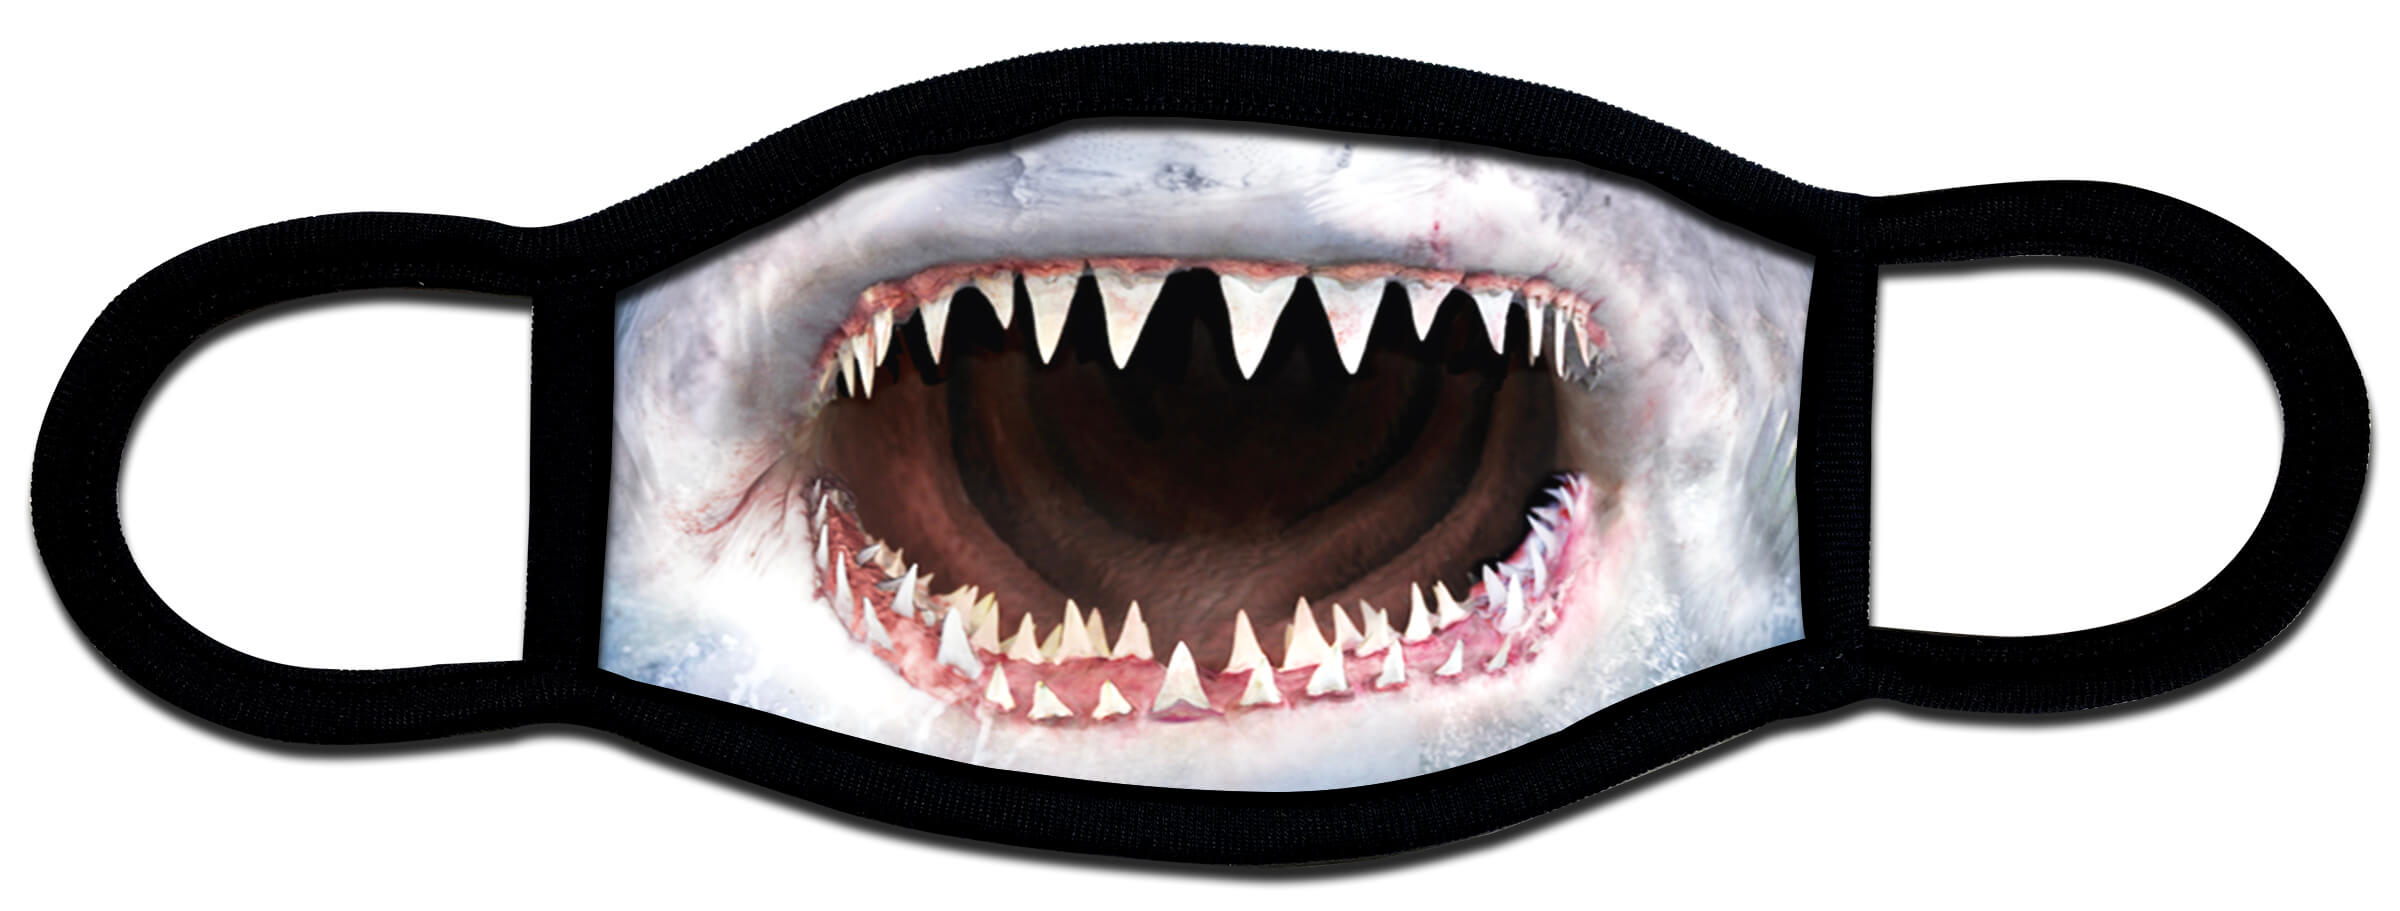 Shark mouth custom protective face mask